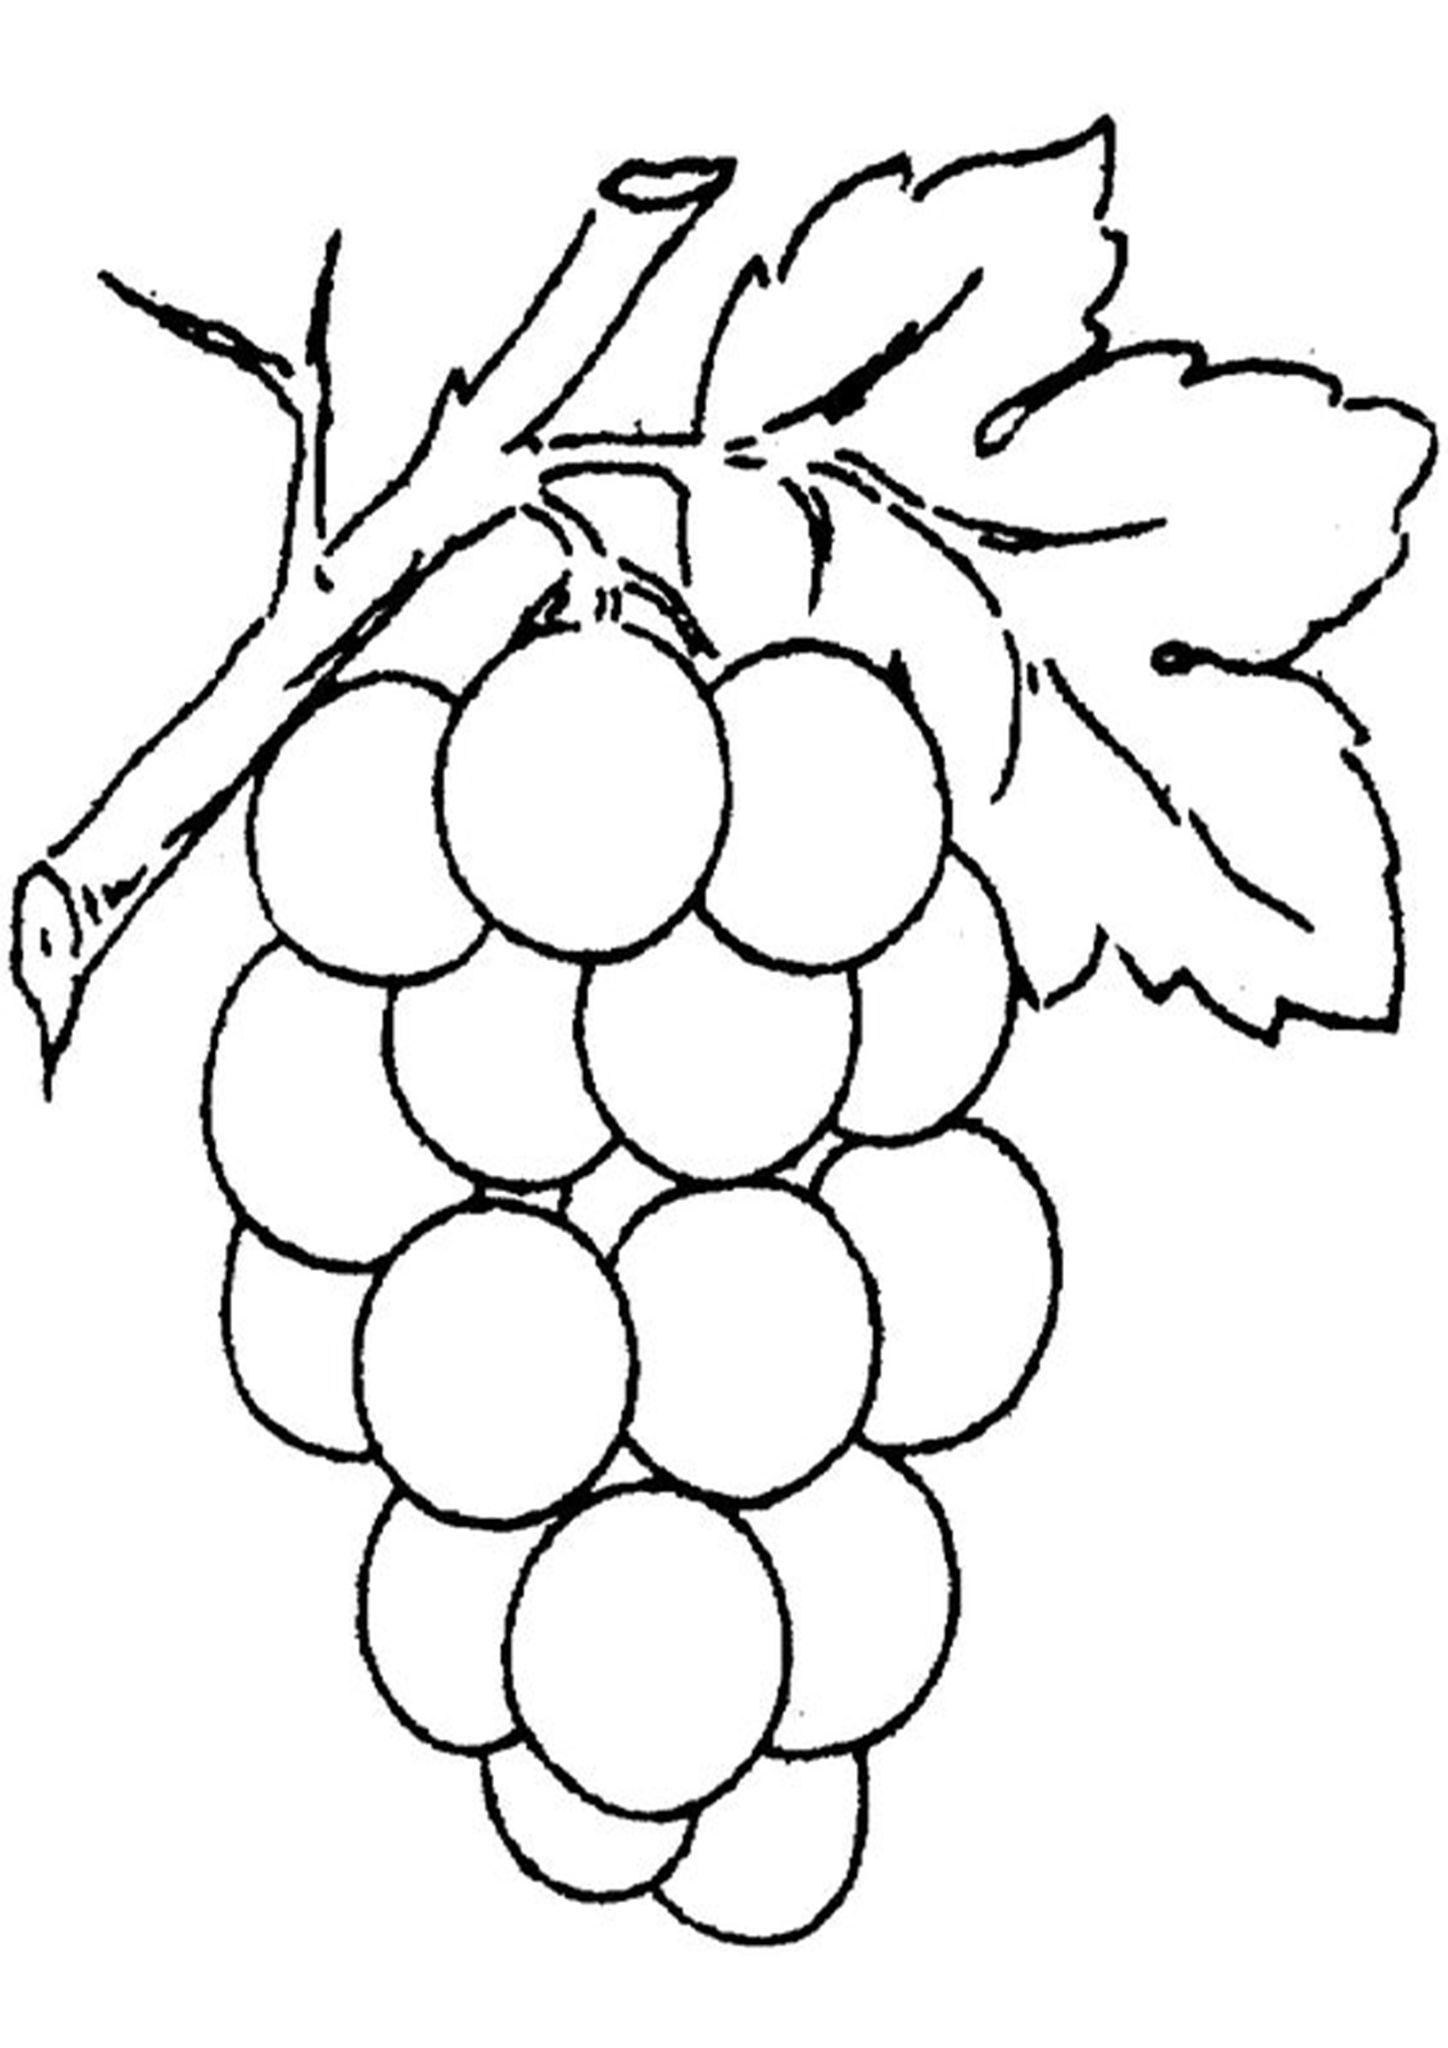 Grapes Coloring Pages